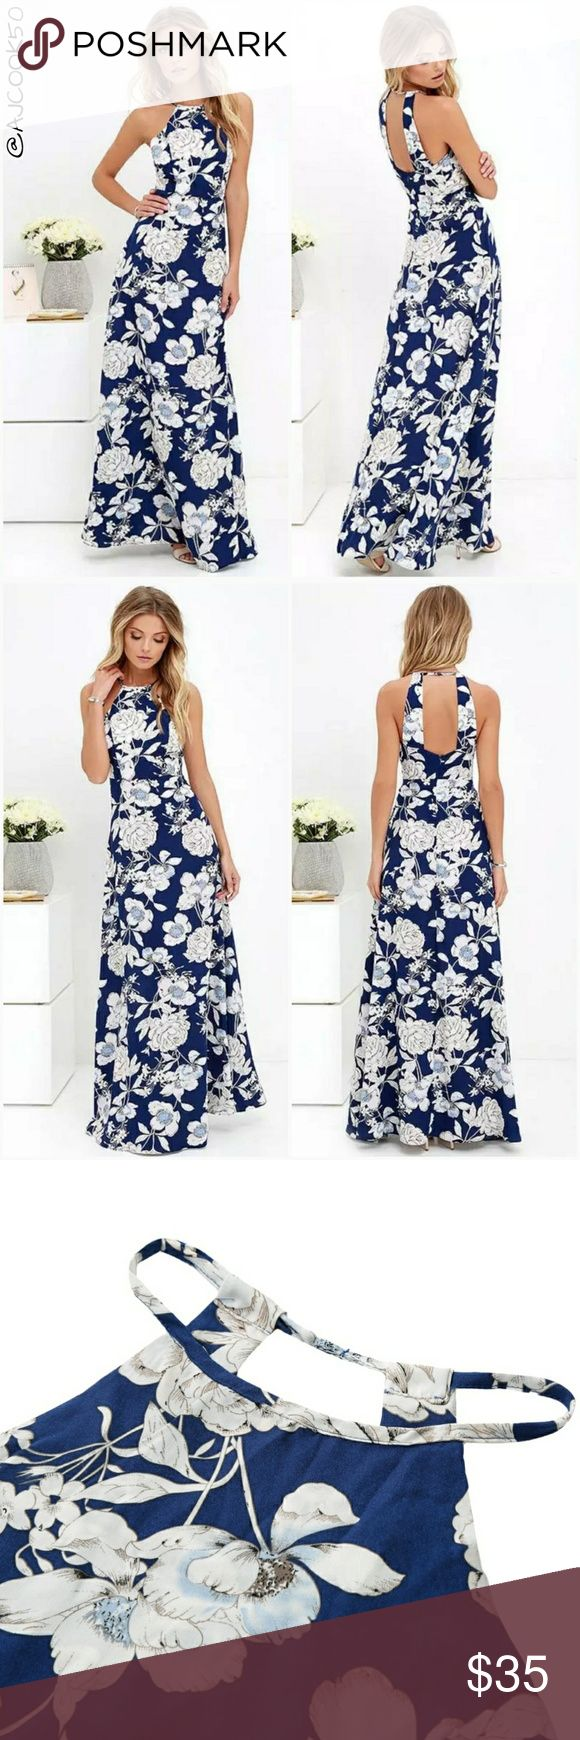 • Just In • Halter Top Floral Print Maxi Dress • Reordering more sizes comment below on what size you want.  Beautiful maxi dress feature white on blue floral print, halter top front and 2 thick back straps. Material: Polyester  Sizes run small please check size chart. AJ's Threads  Dresses Maxi